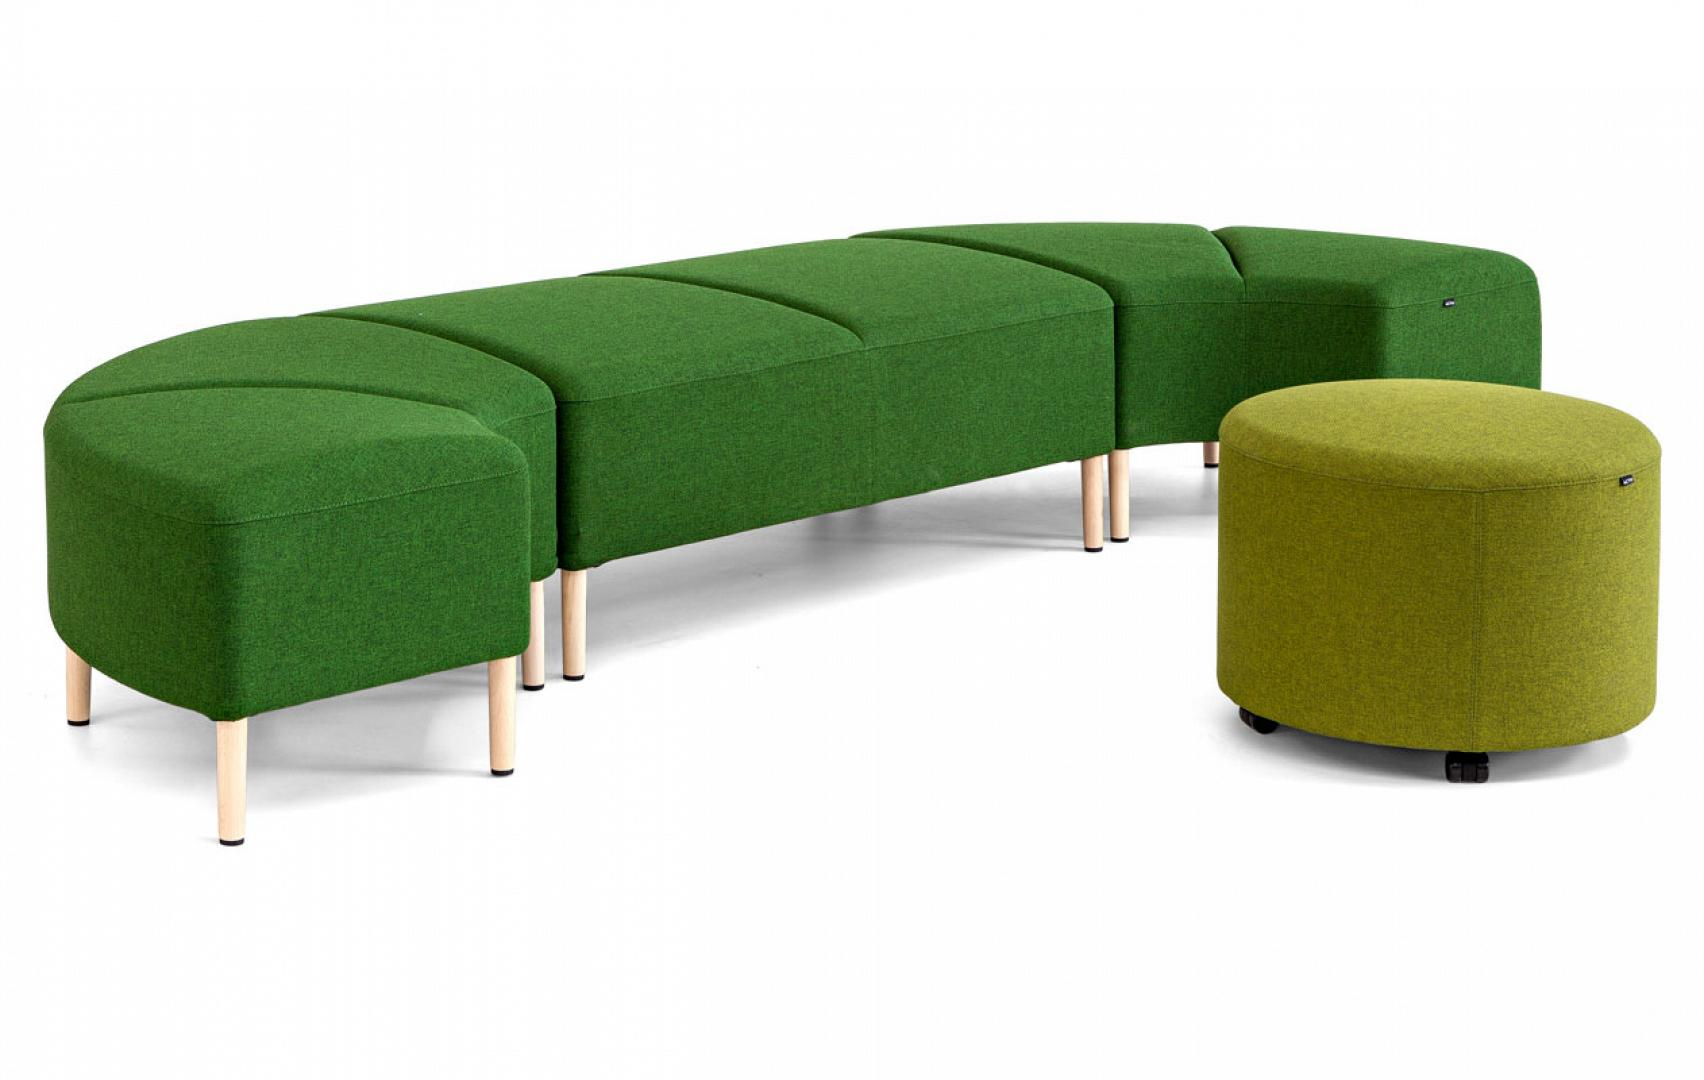 SOFT SEATING, un design élégant